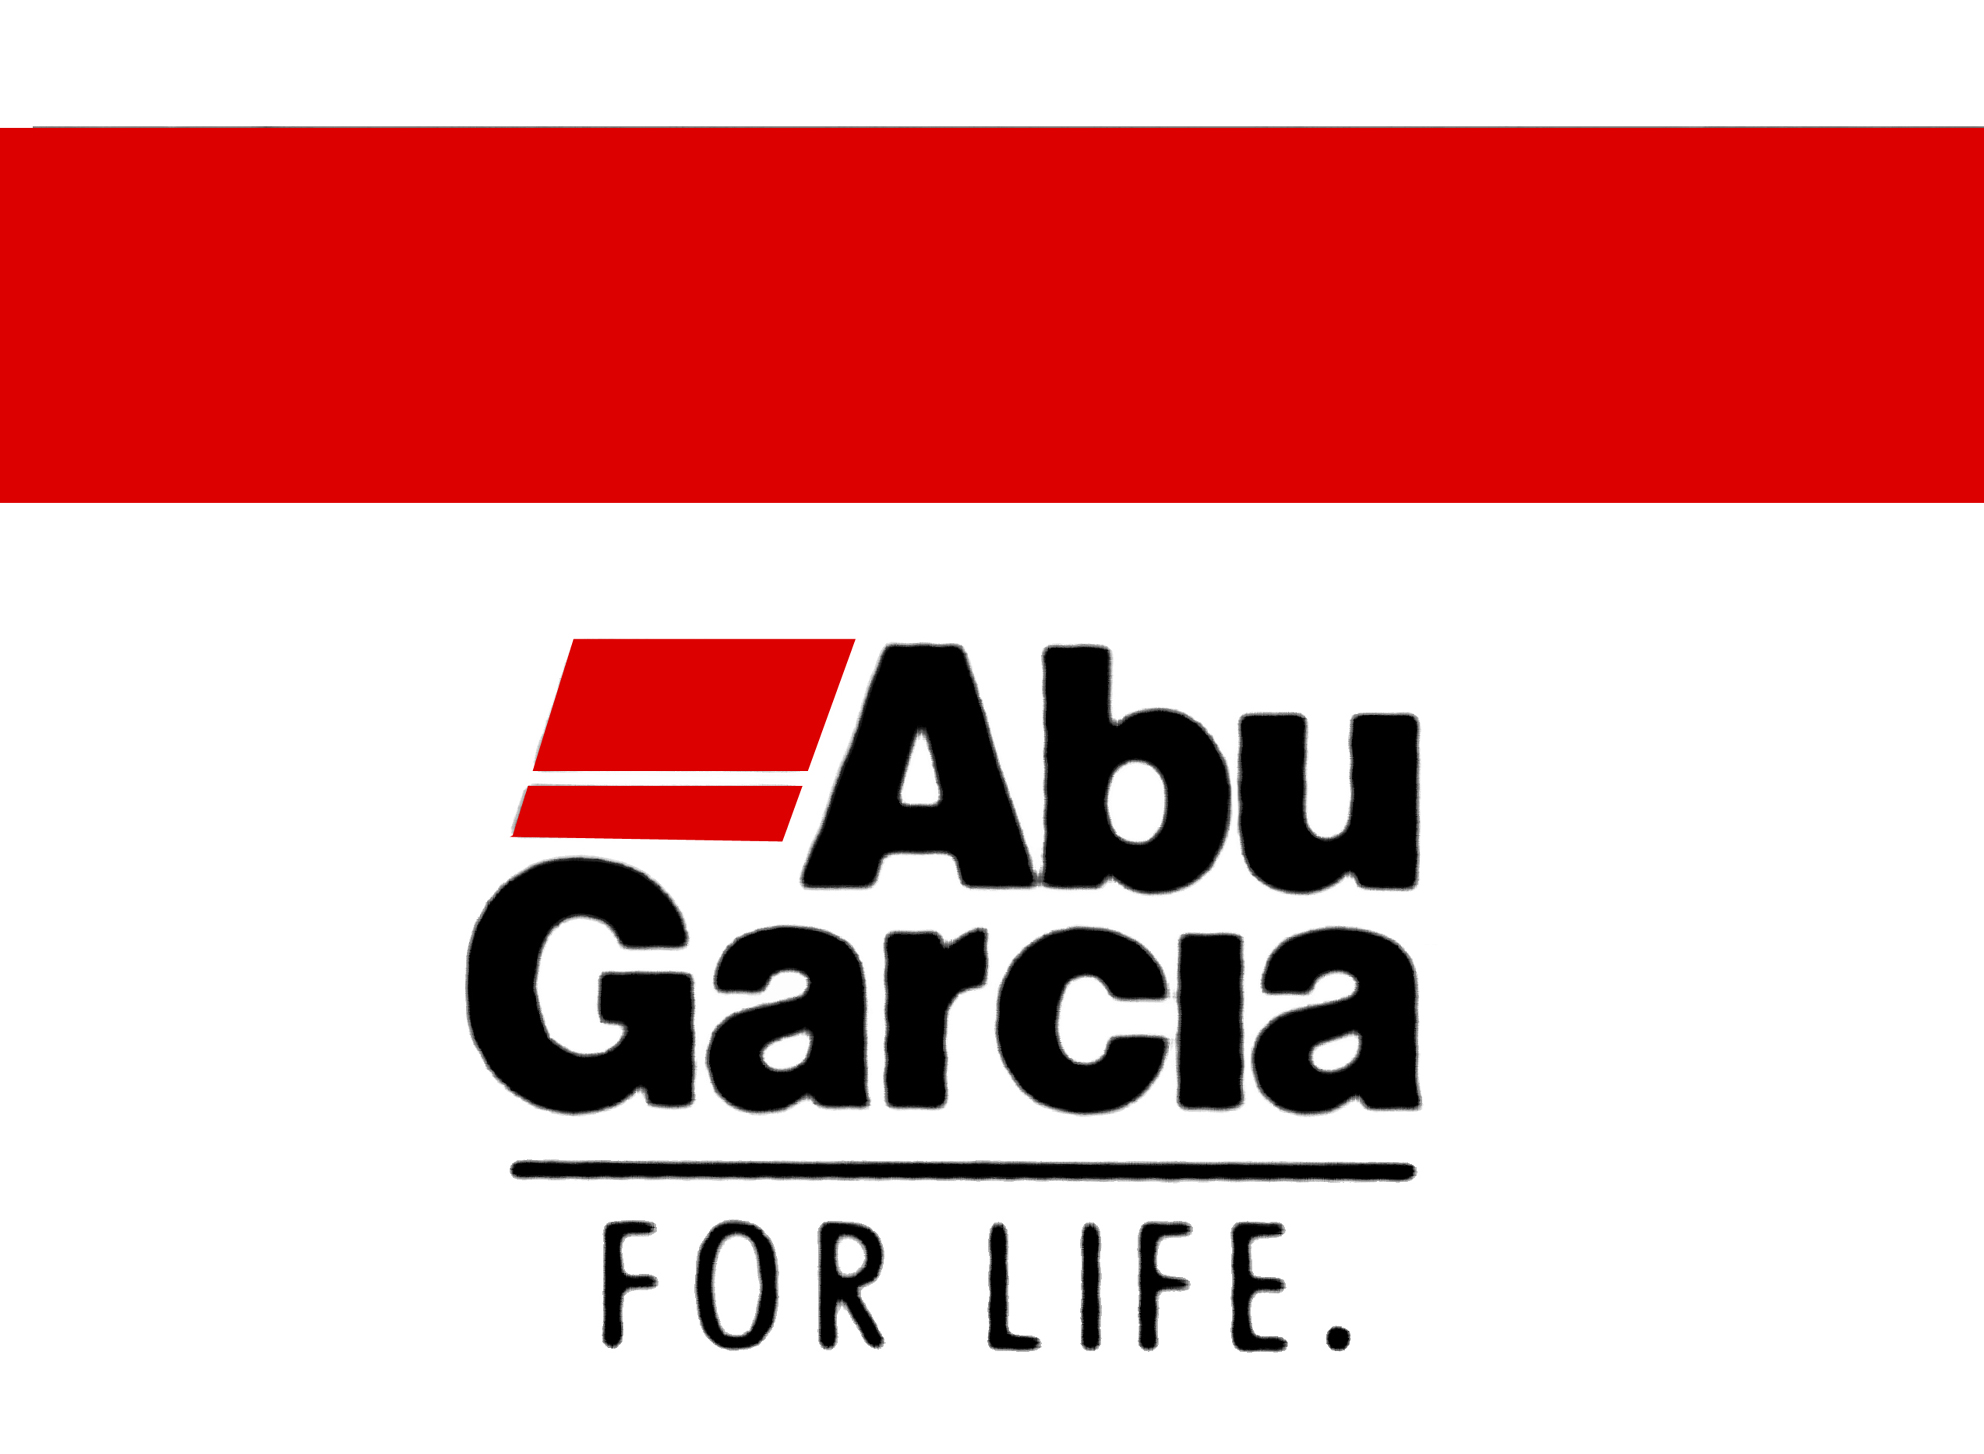 Abu Garcia Wallpaper - WallpaperSafari